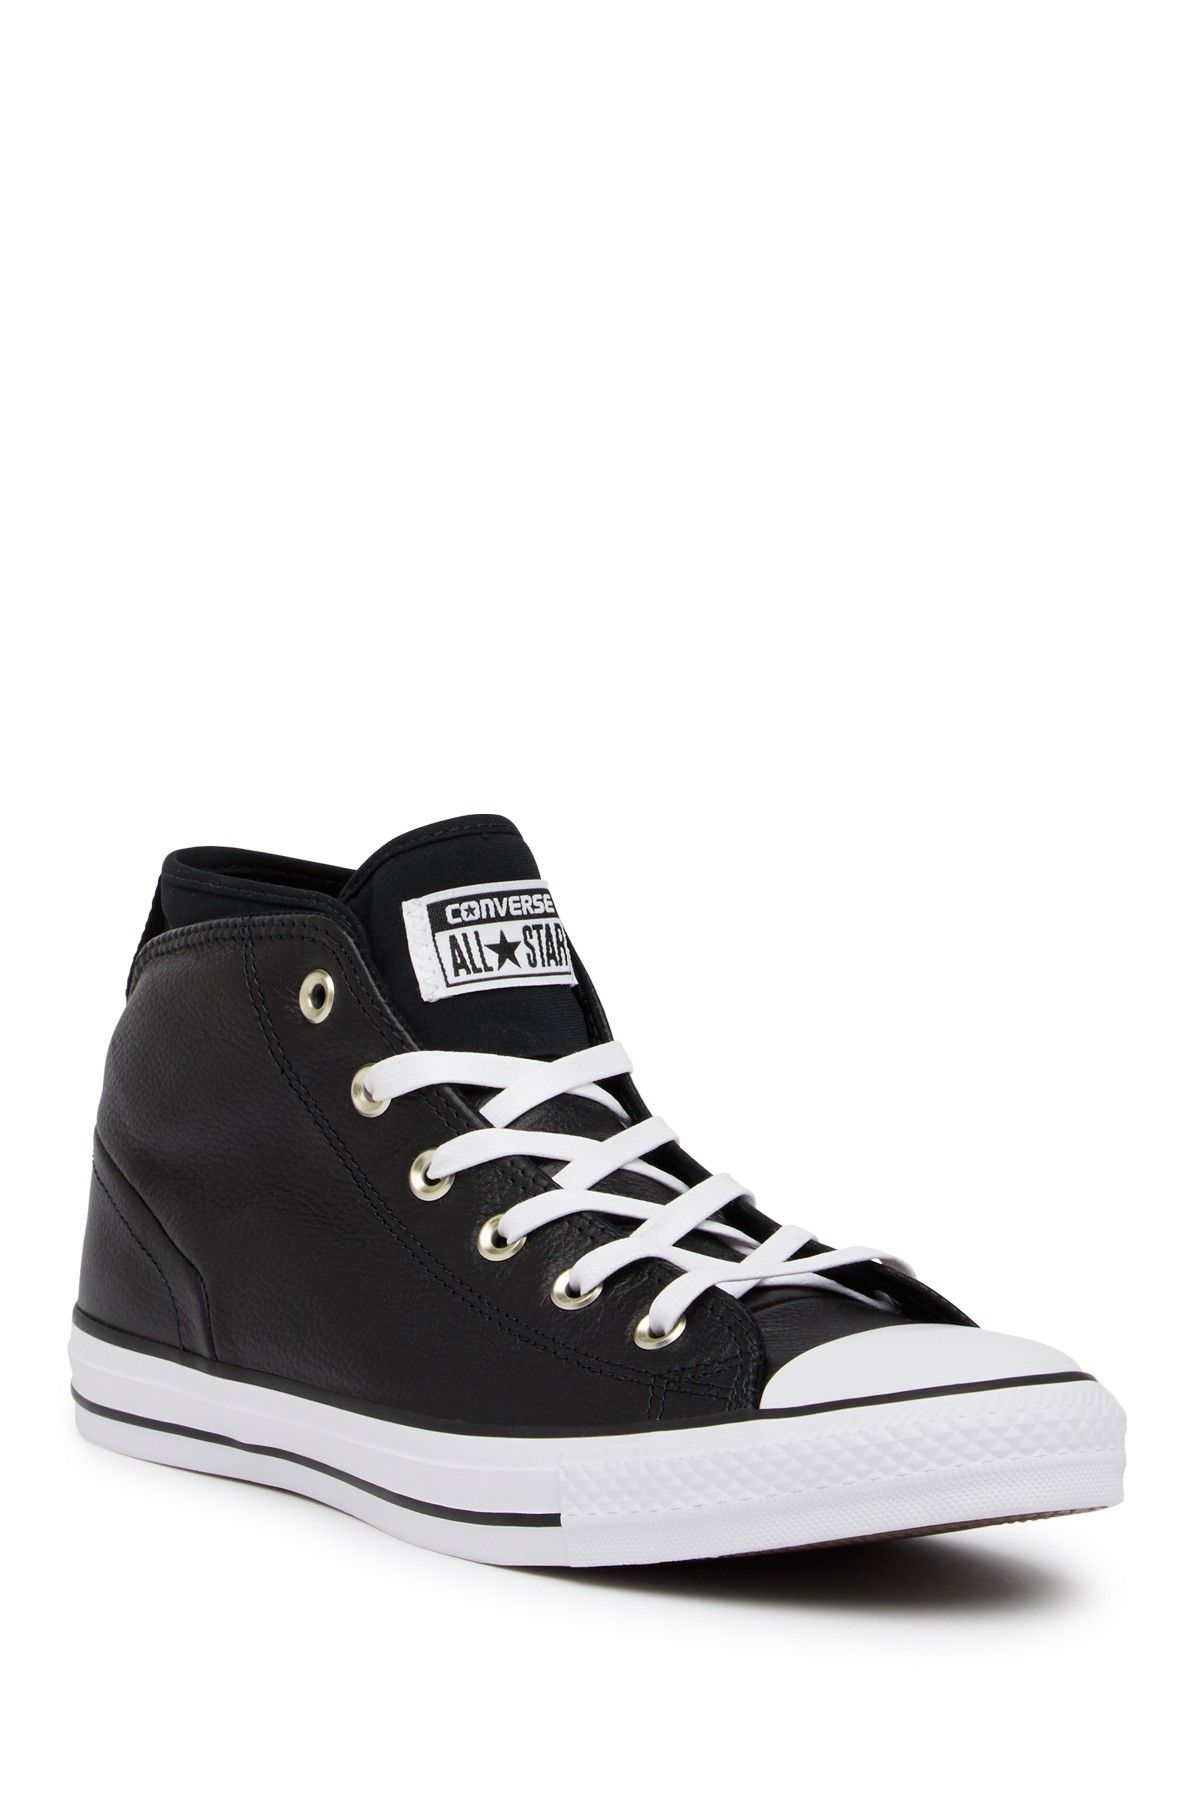 b78c3bef7a0a Converse Chuck Taylor All Star Syde Street Mid Sneaker (Unisex ...